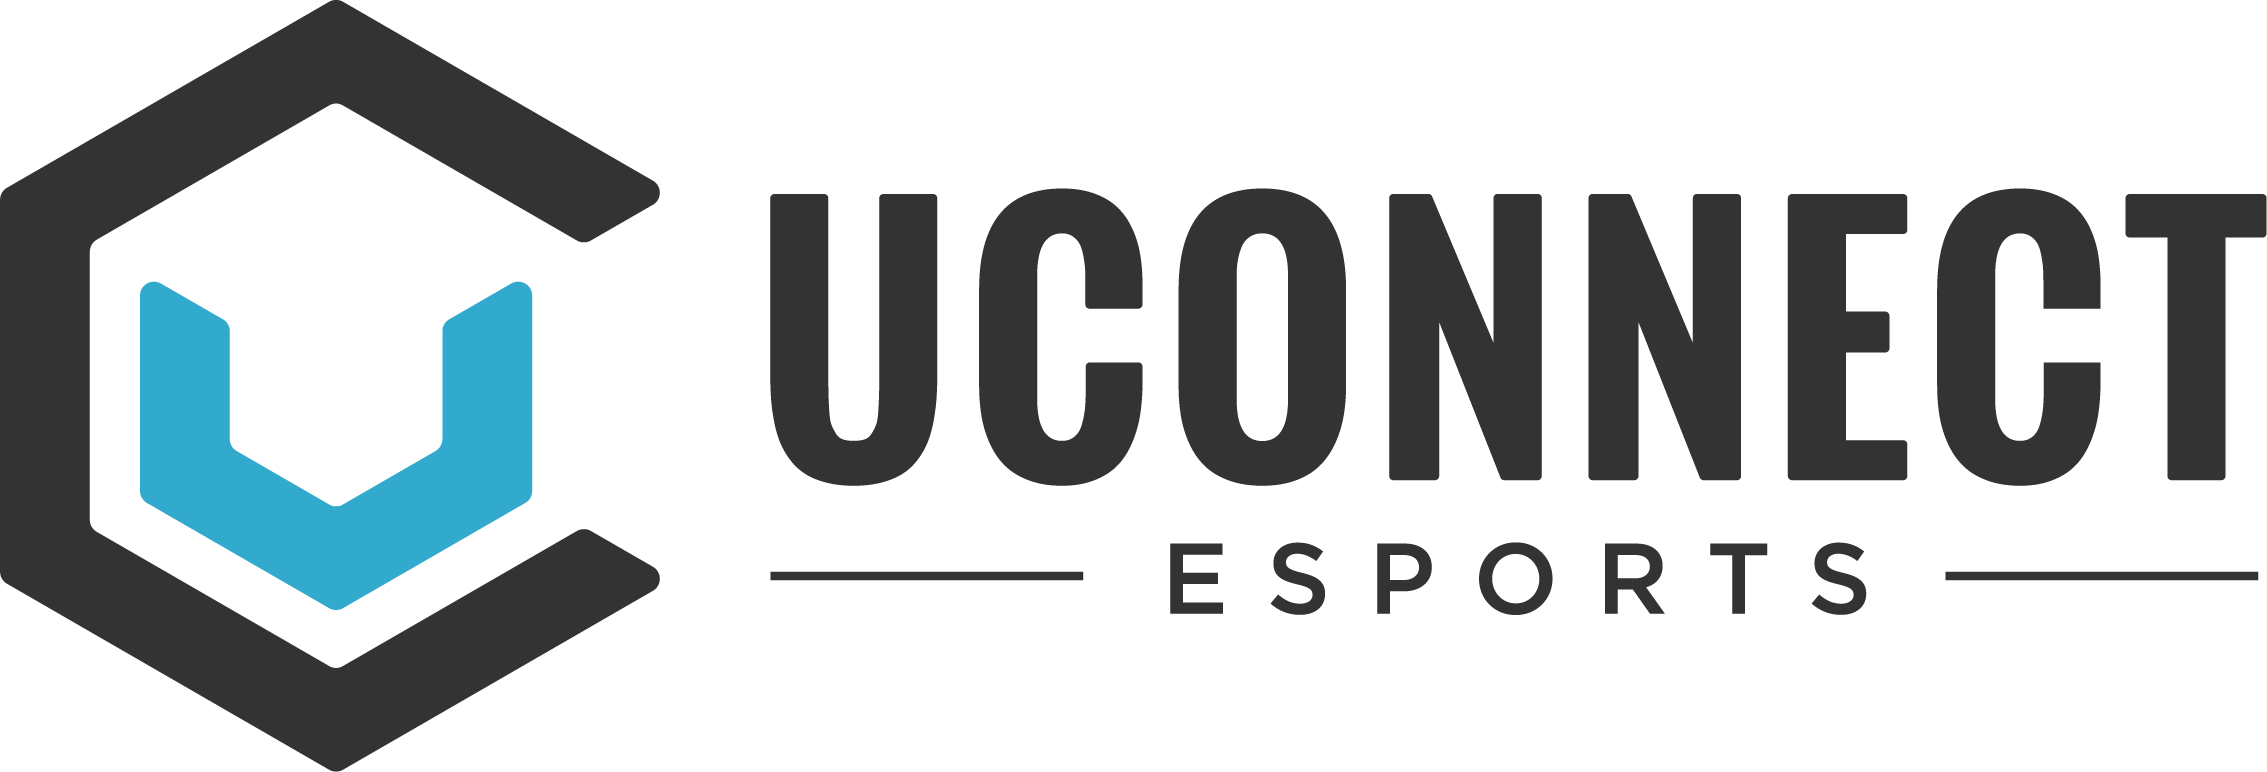 UConnect Esports - The Uconnect Esports platform is a network of collegiate, city-based, and online esports organizations. They provide infrastructure and support to Esports organizations.